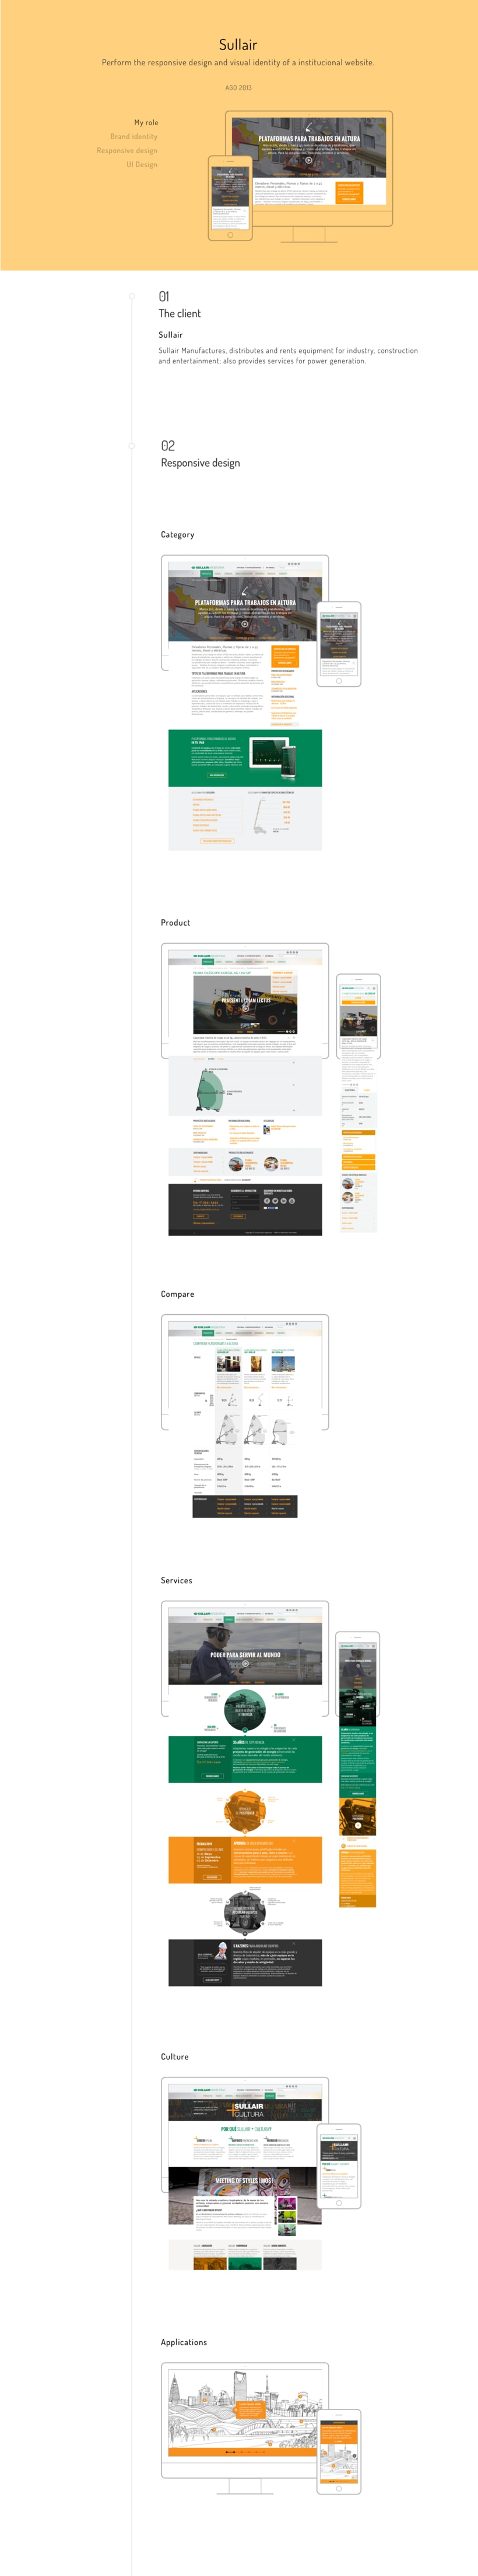 responsive design | Sullair 0